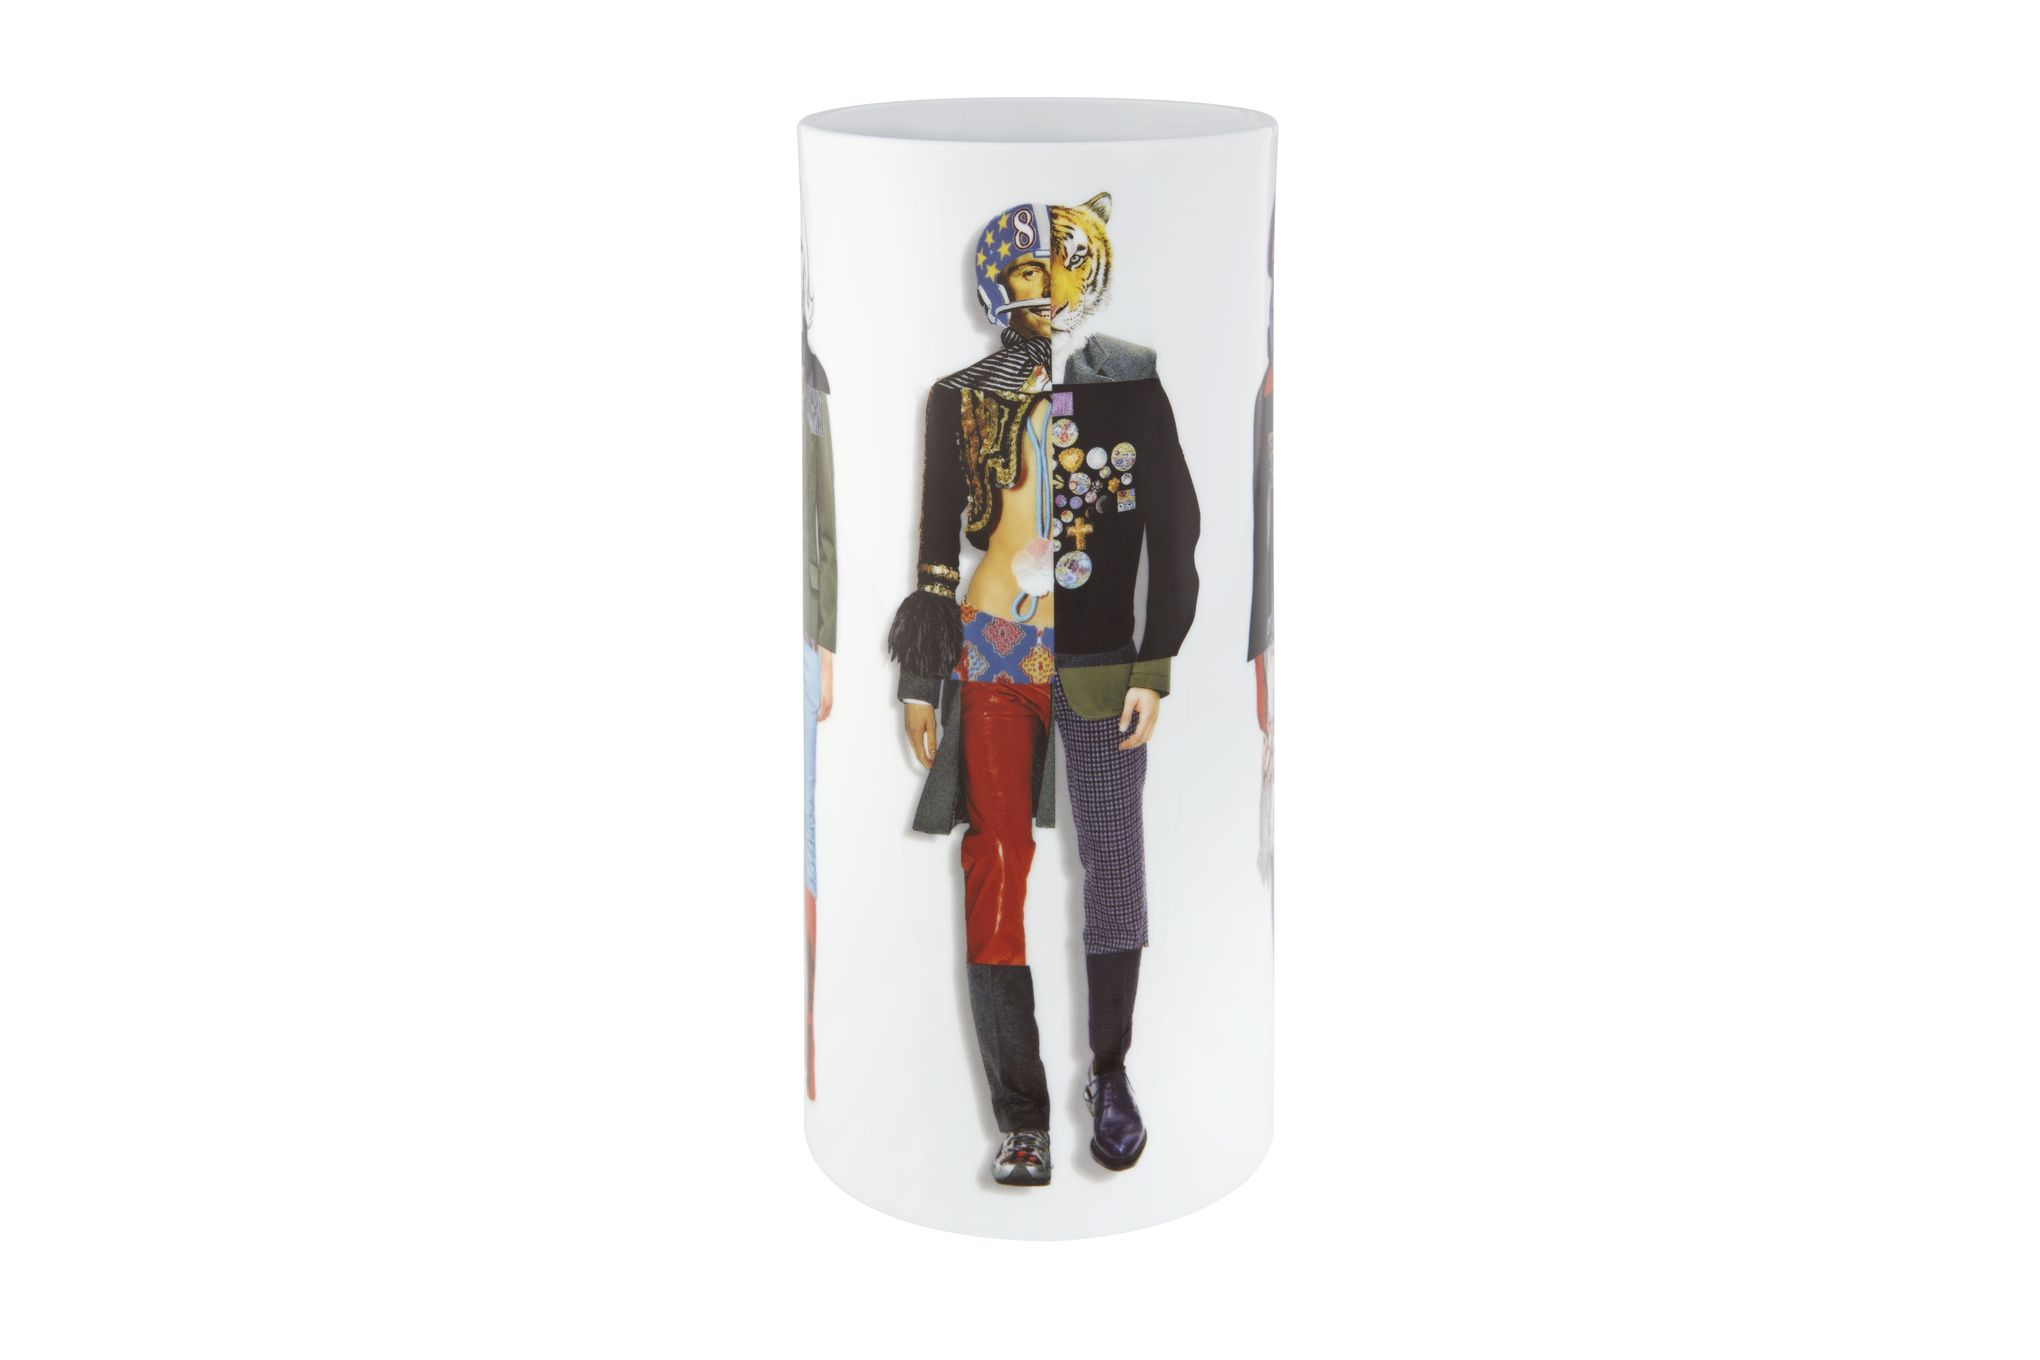 Christian Lacroix Love Who You Want Vase Gift Boxed 27.8cm thumb 4